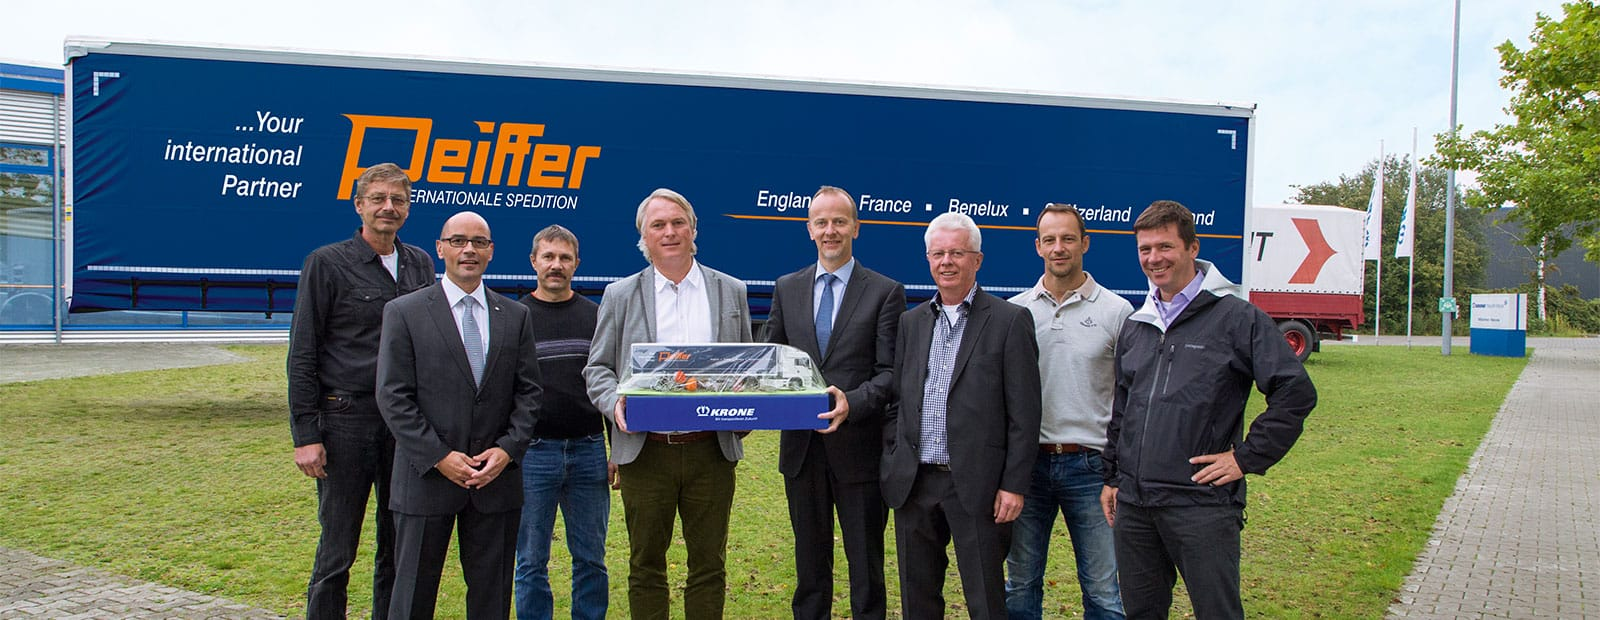 400th Krone Trailer for freight forwarding company Peiffer